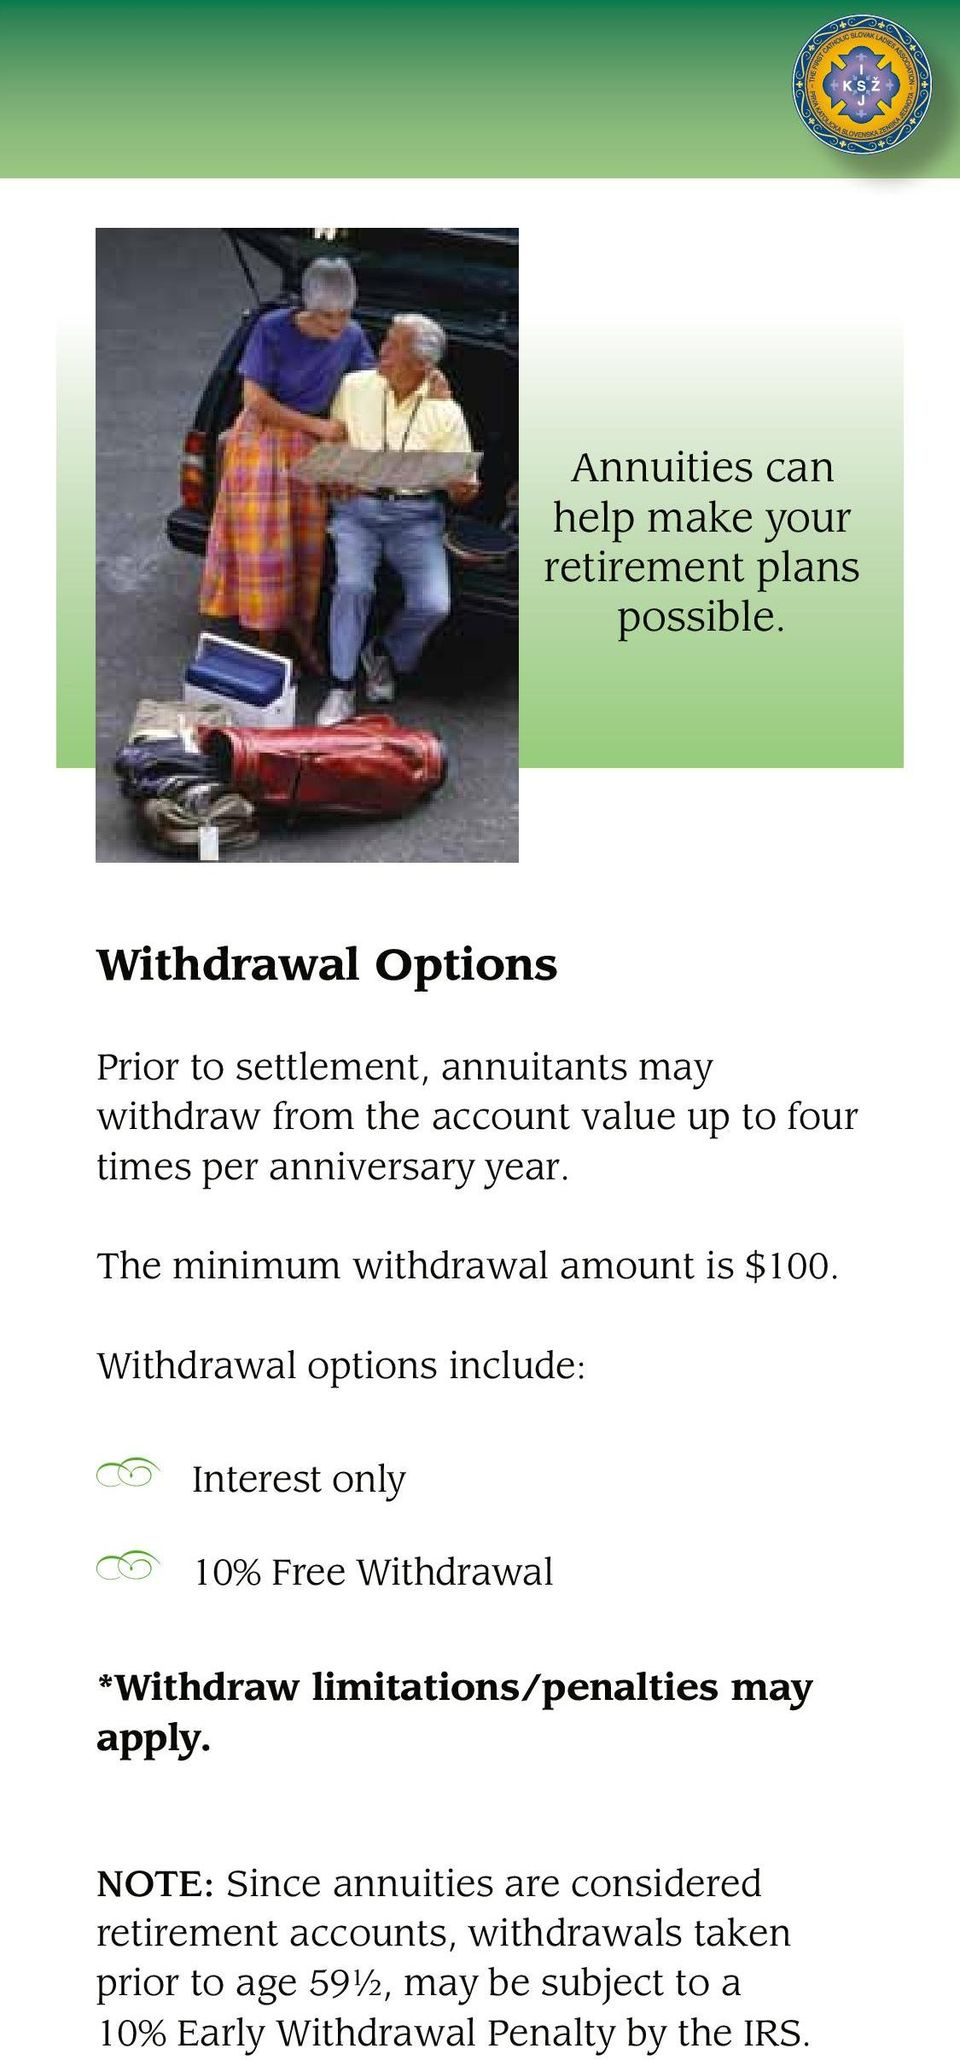 year. The minimum withdrawal amount is $100.